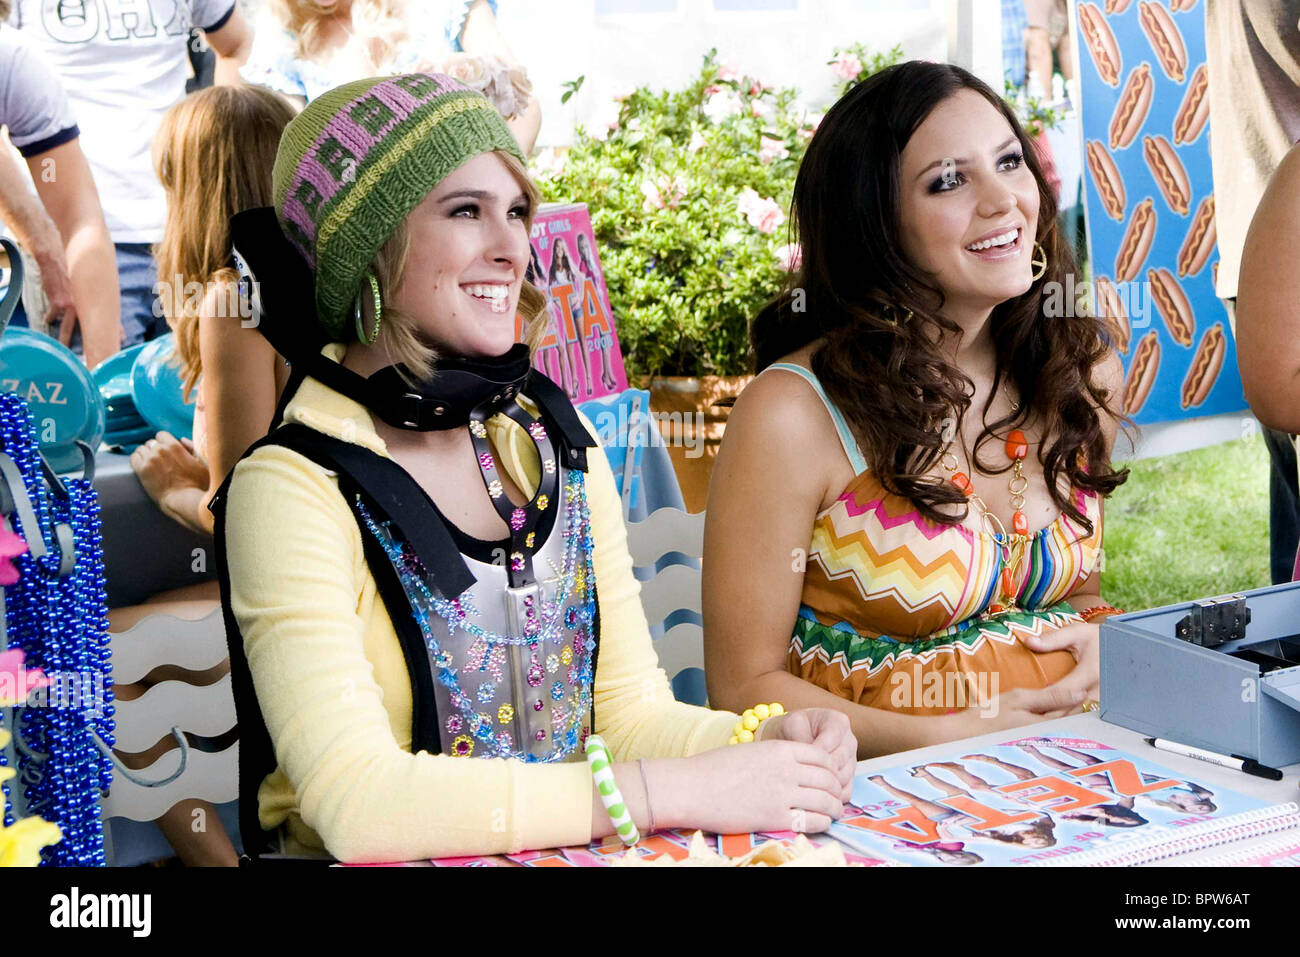 Rumer Willis Katharine Mcphee The House Bunny 2008 Stock Photo Alamy